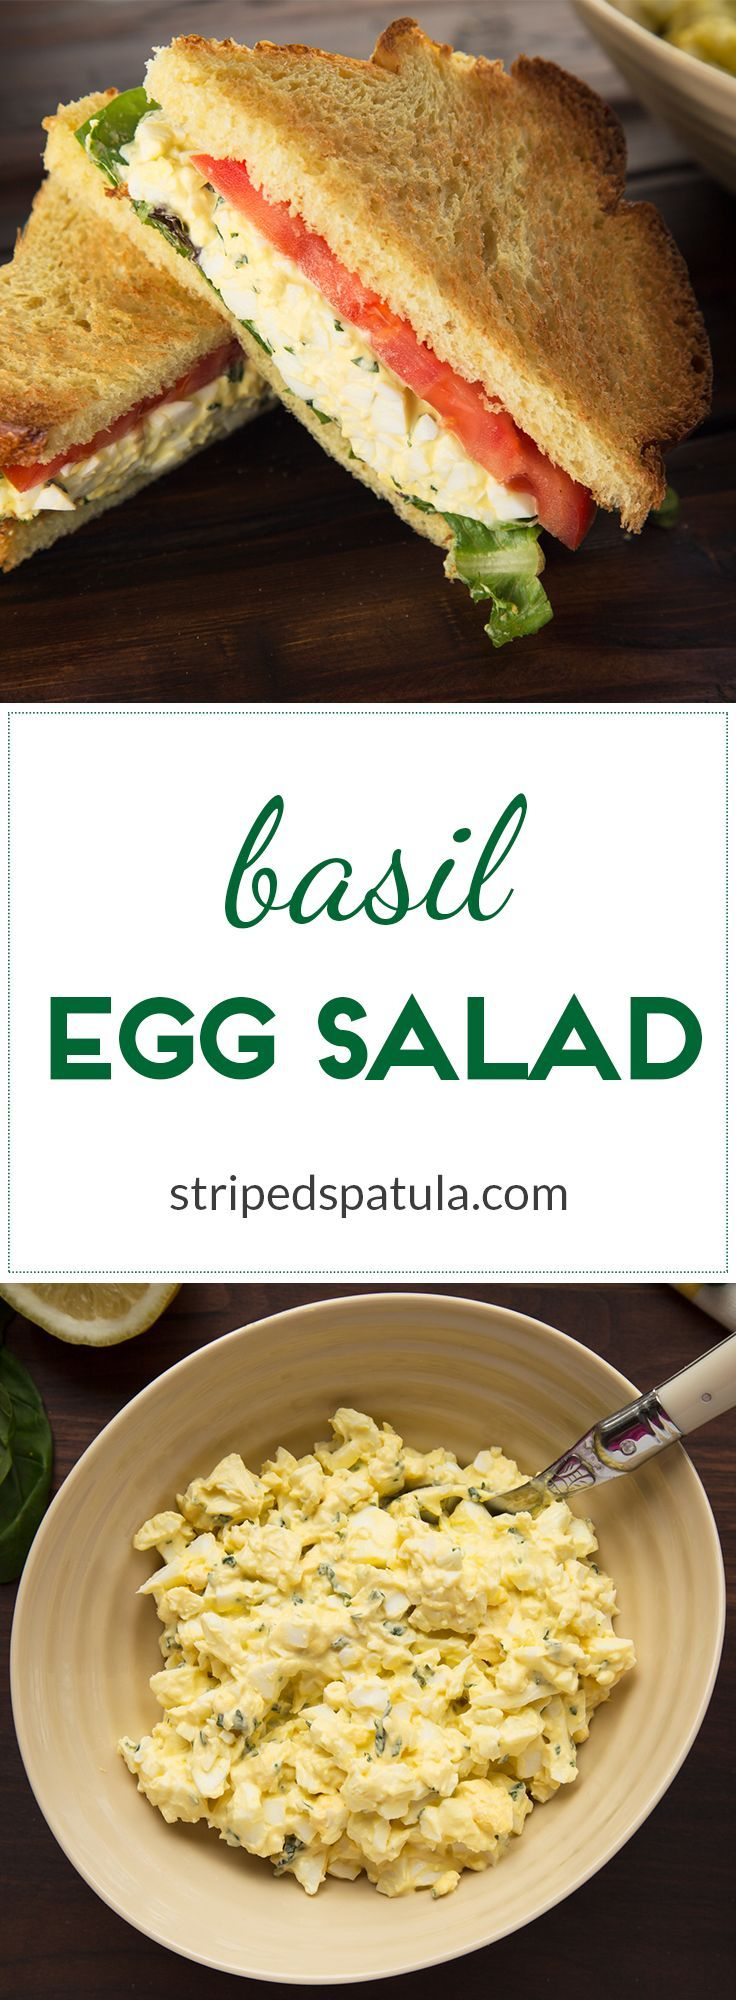 about Sandwiches on Pinterest | Egg Salad, French Toast Sandwich ...